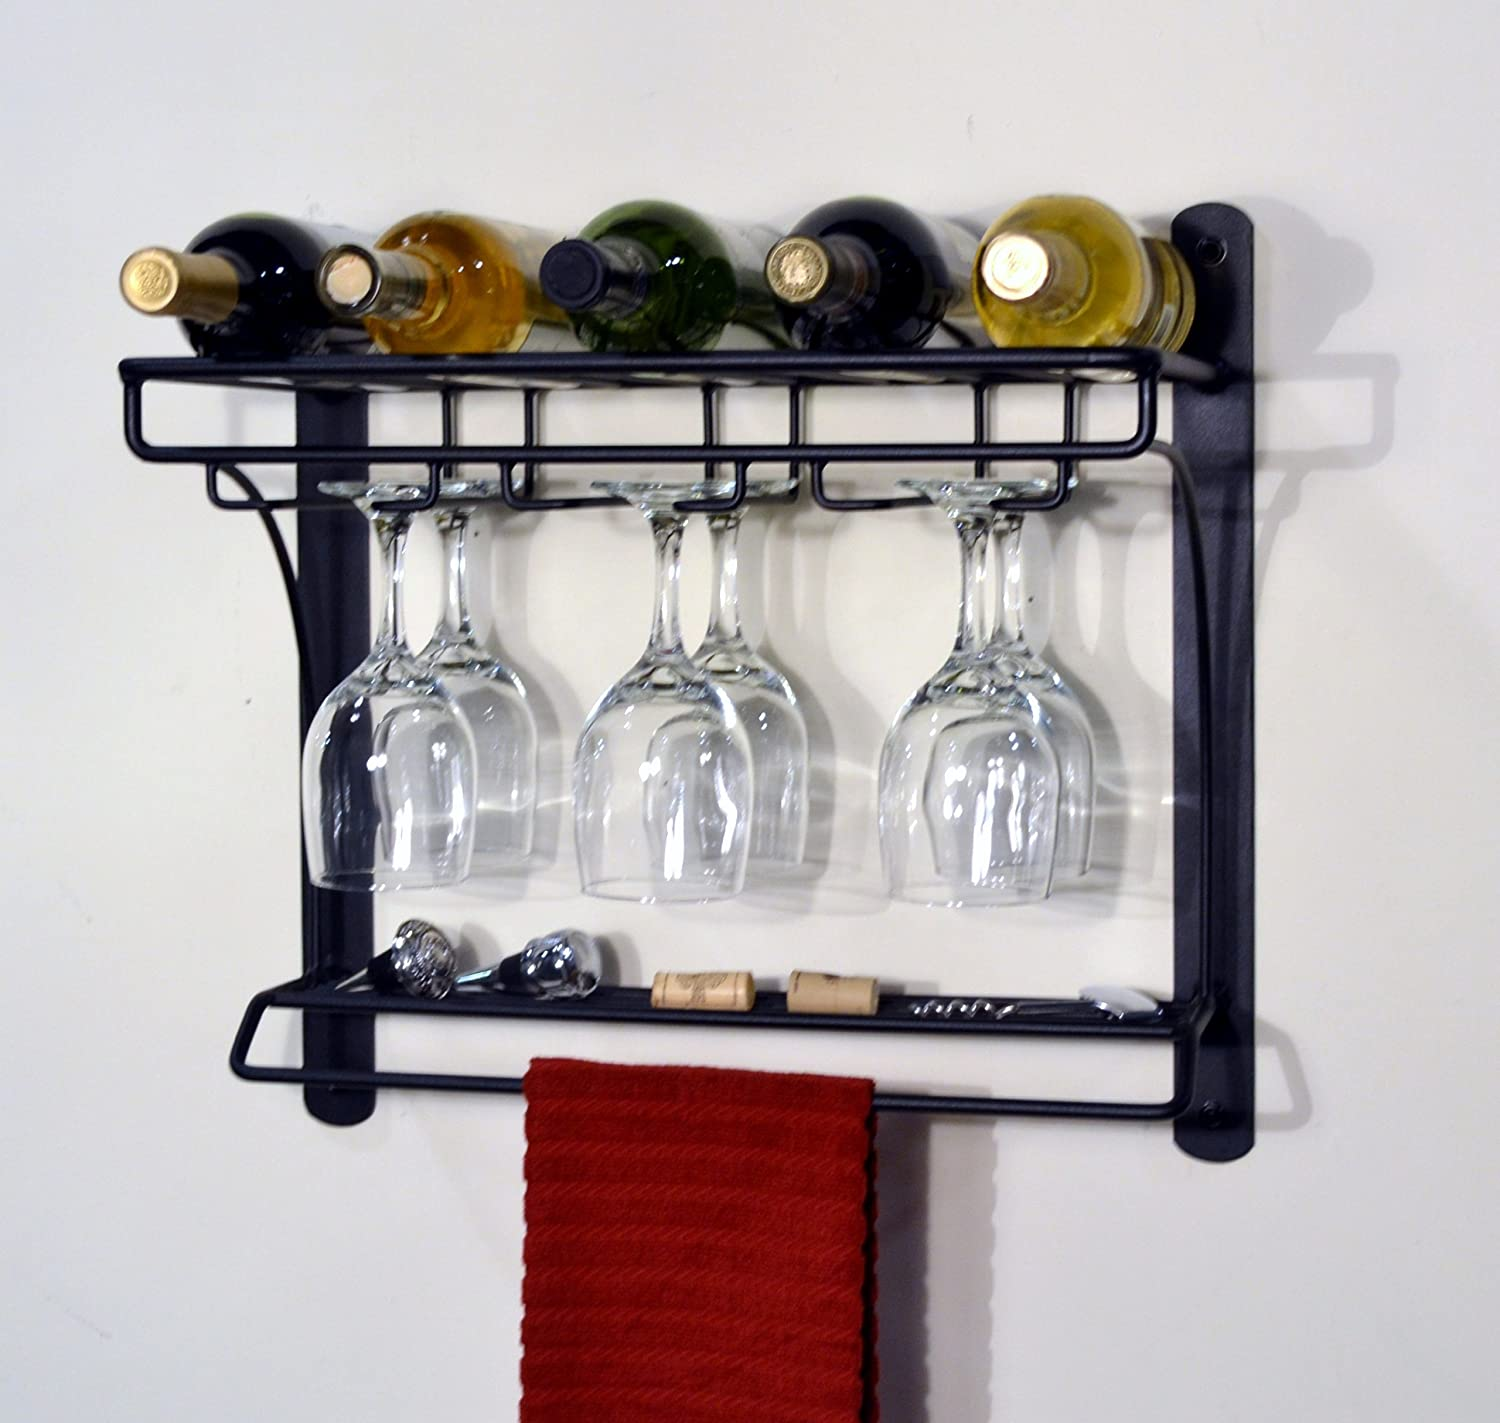 Great Hanging Wine Glass Racks For Saving Space Wine Gifted